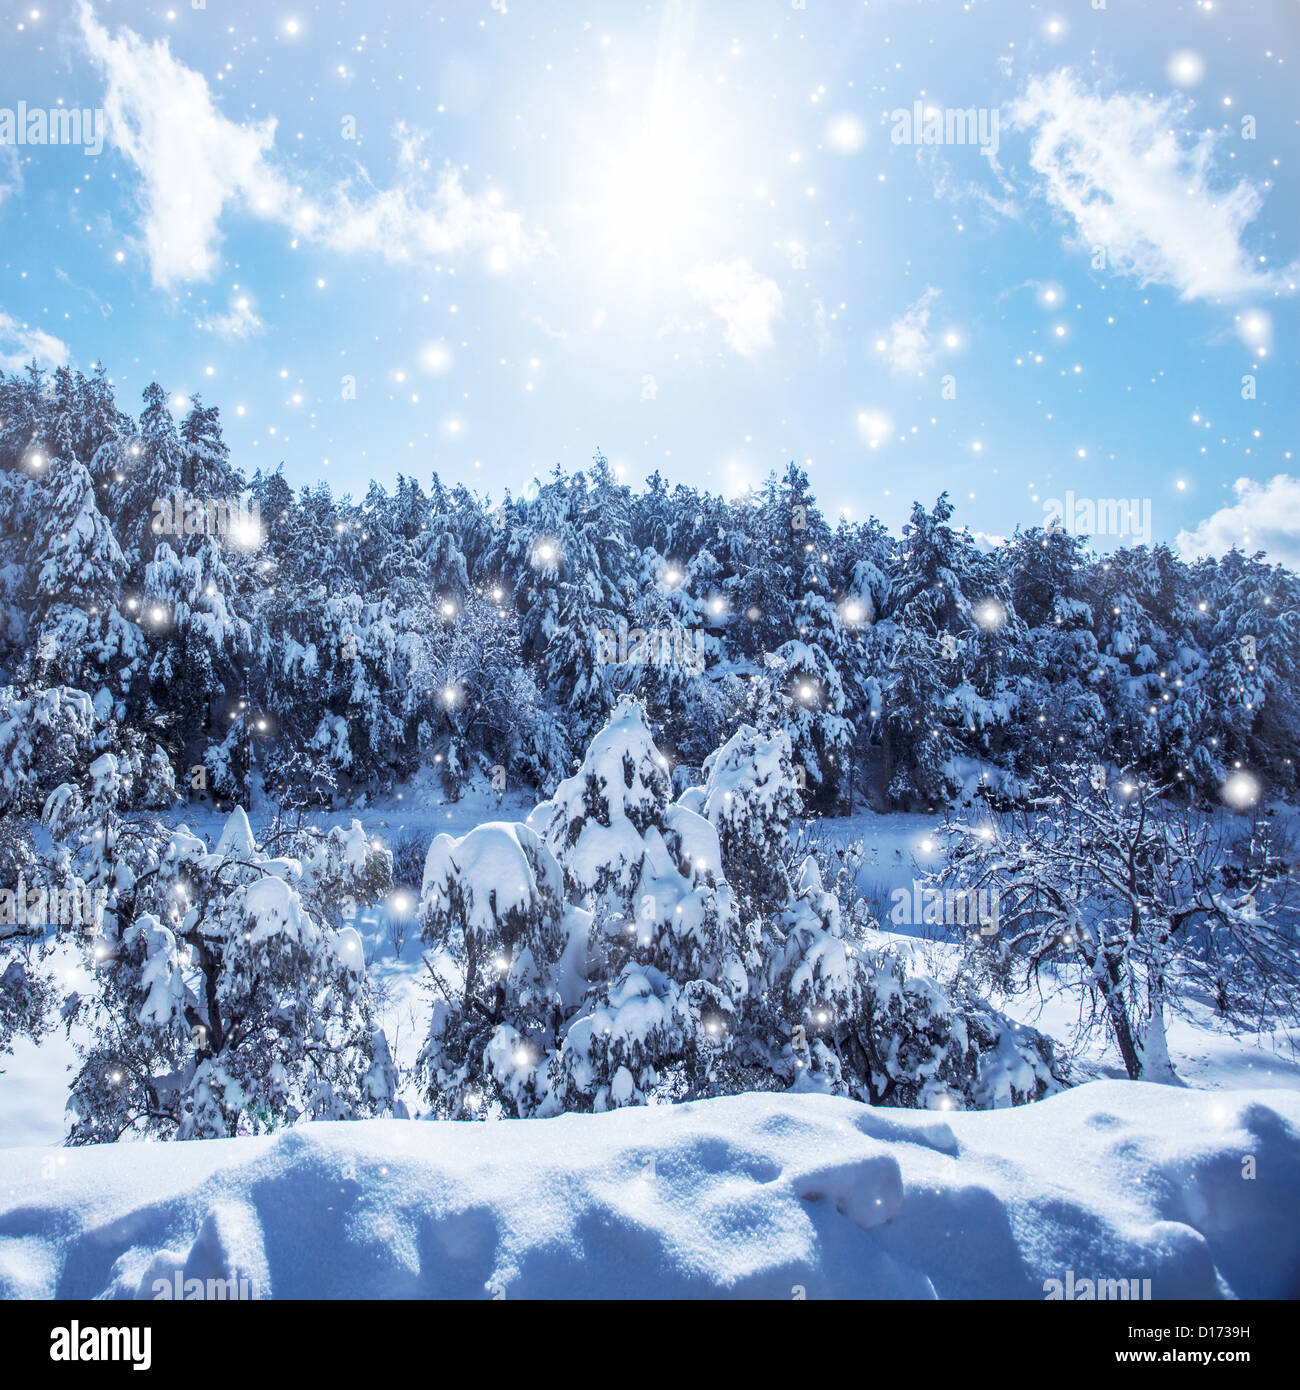 Image of snowfall in woods, fir tree forest covered with white snow, snowy coniferous tree in the mountains, cold - Stock Image